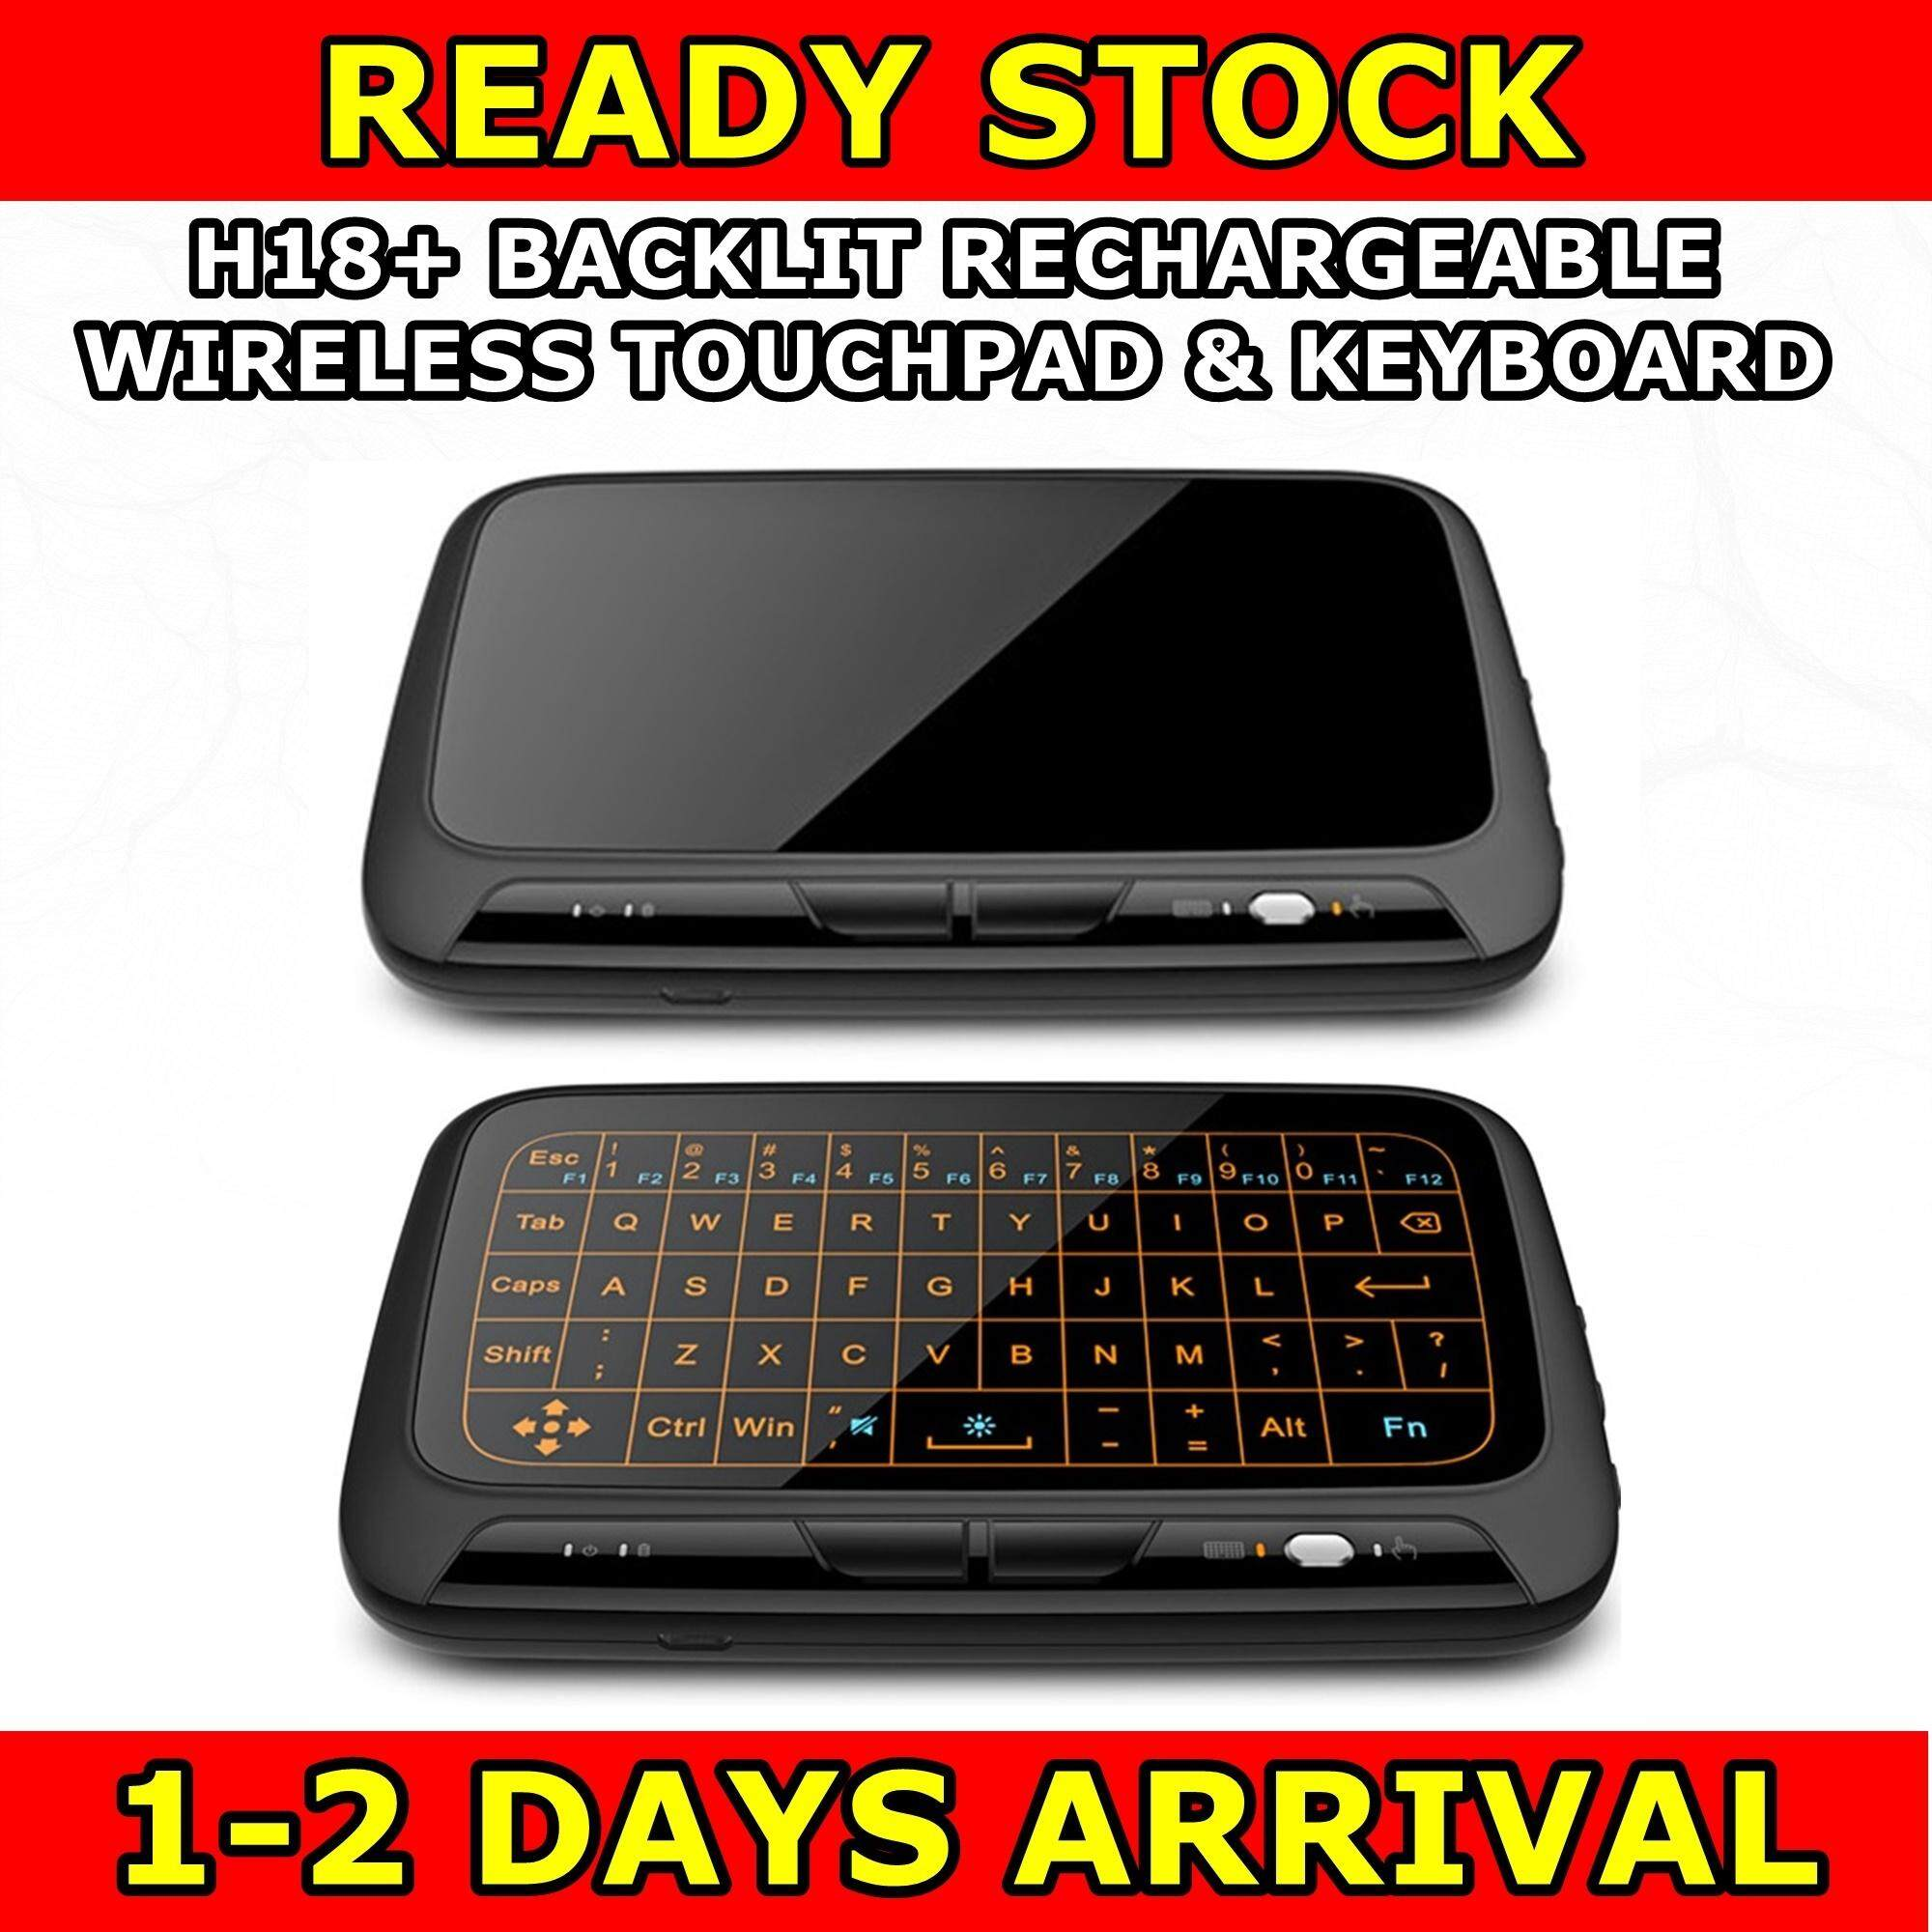 H18+ Air Mouse Full Touchpad Backlit Backlight Rechargeable Plus Wireless Mini Keyboard 2.4GHz Remote Control Gaming Touch Pad Smart TV PS3 TV Box PC Android Windows Malaysia